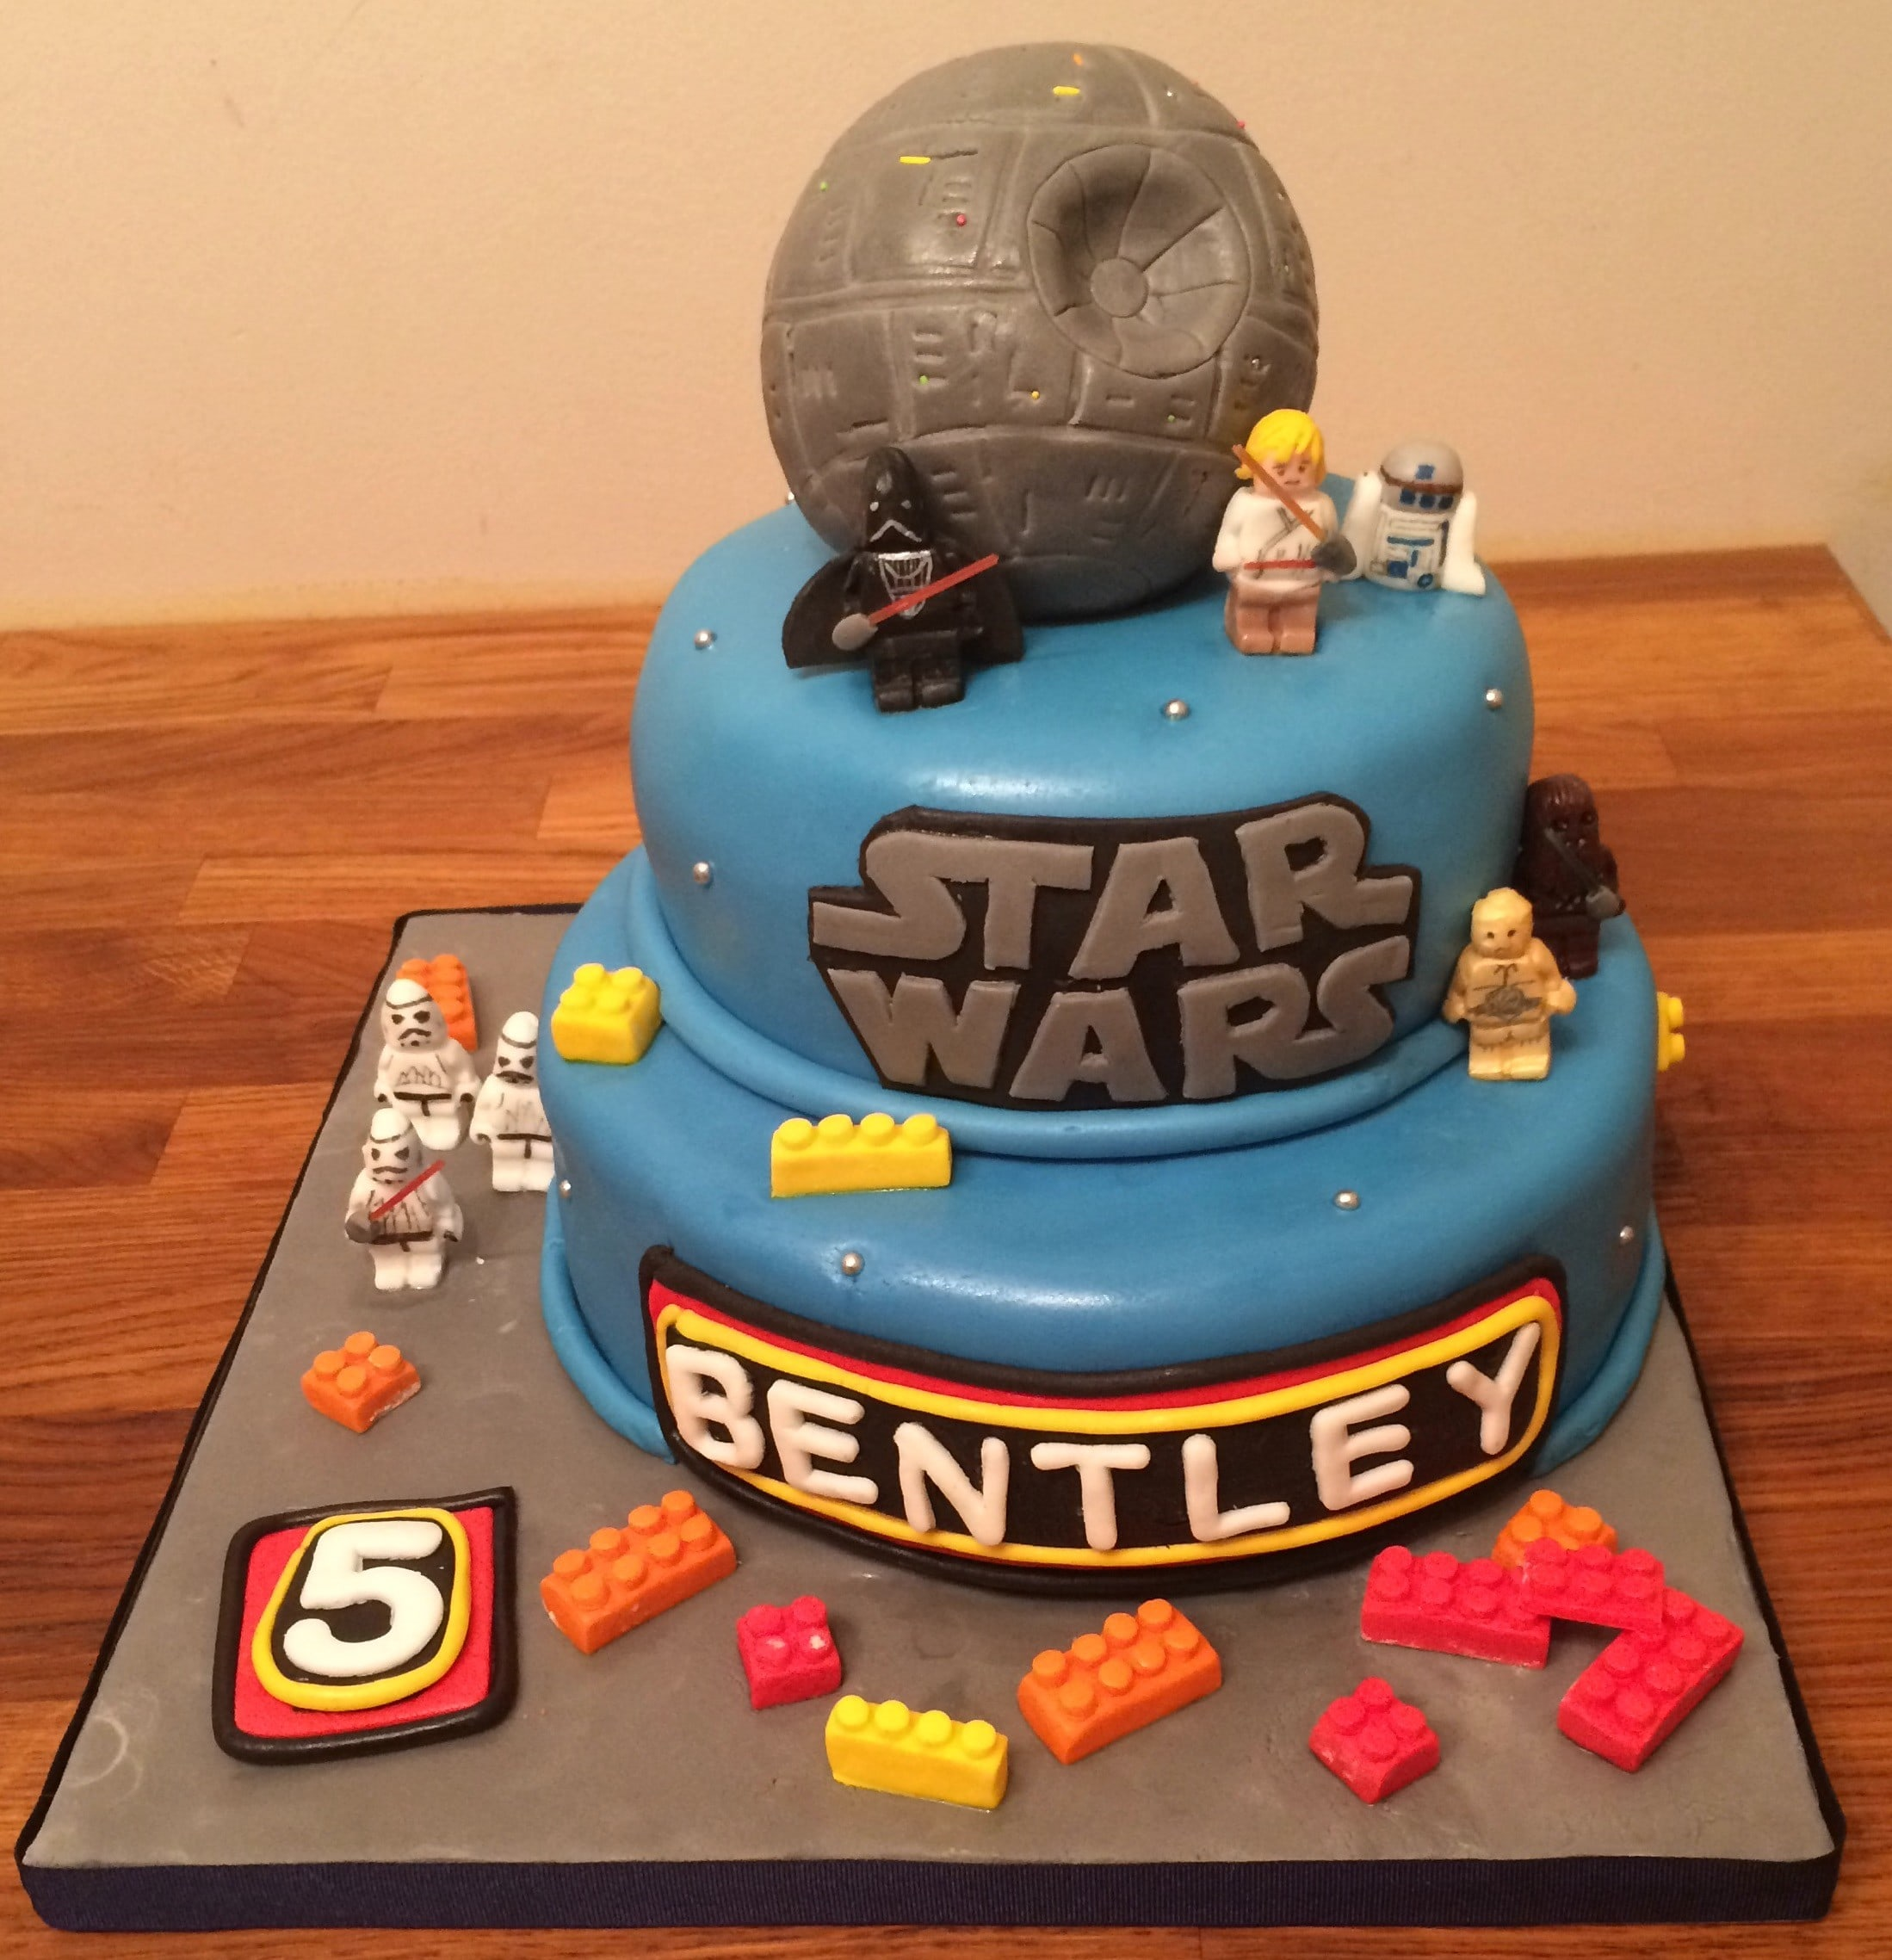 Click to order the starwars cake